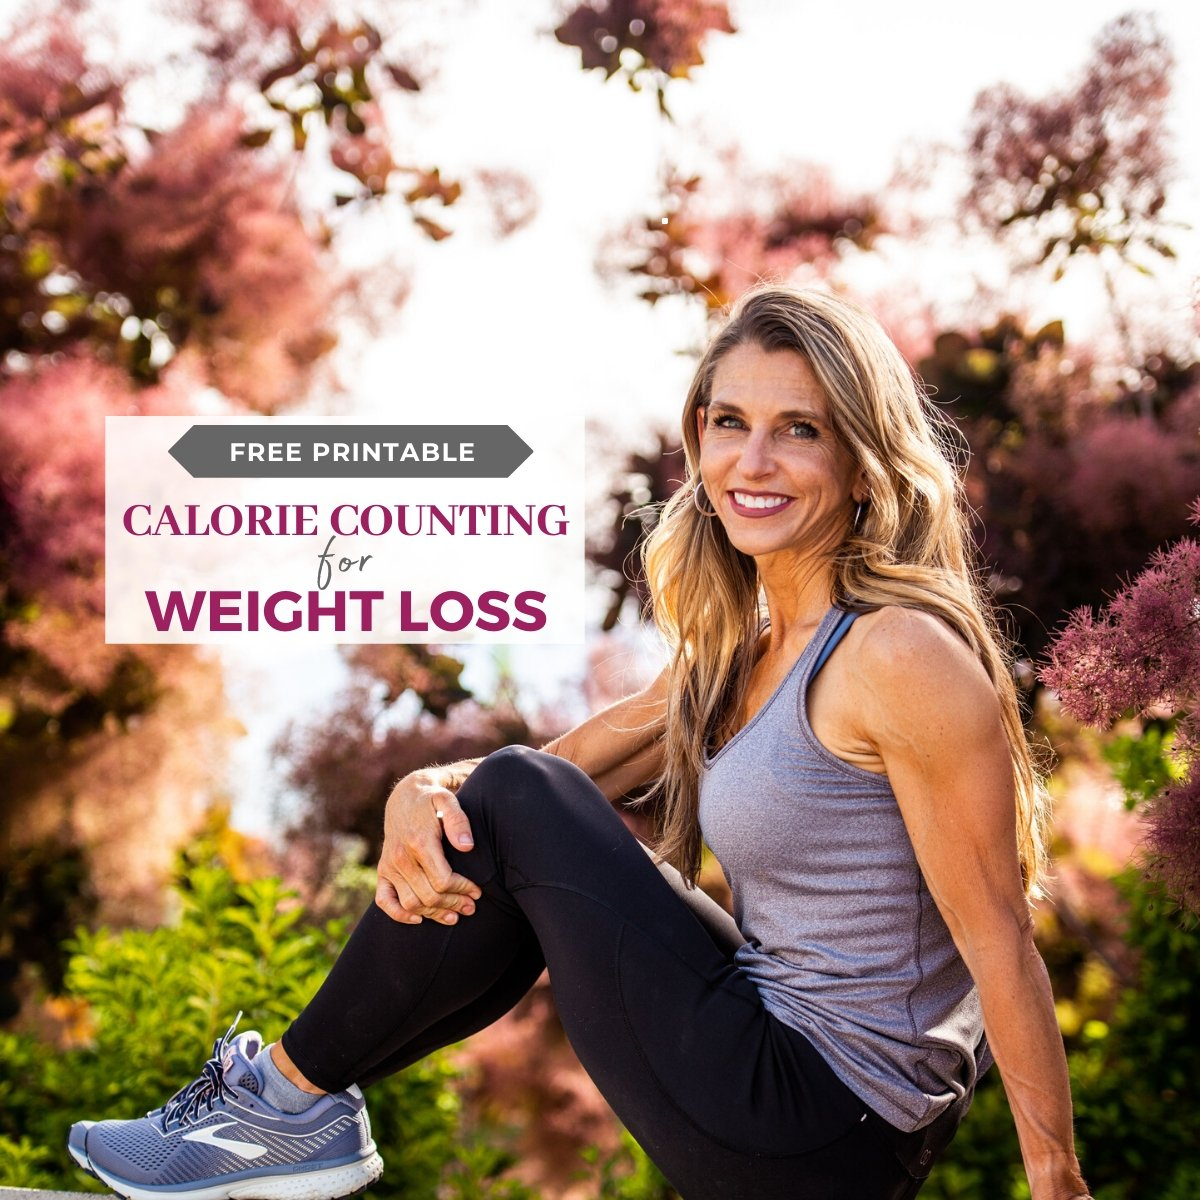 free printable and calorie counting for weight loss